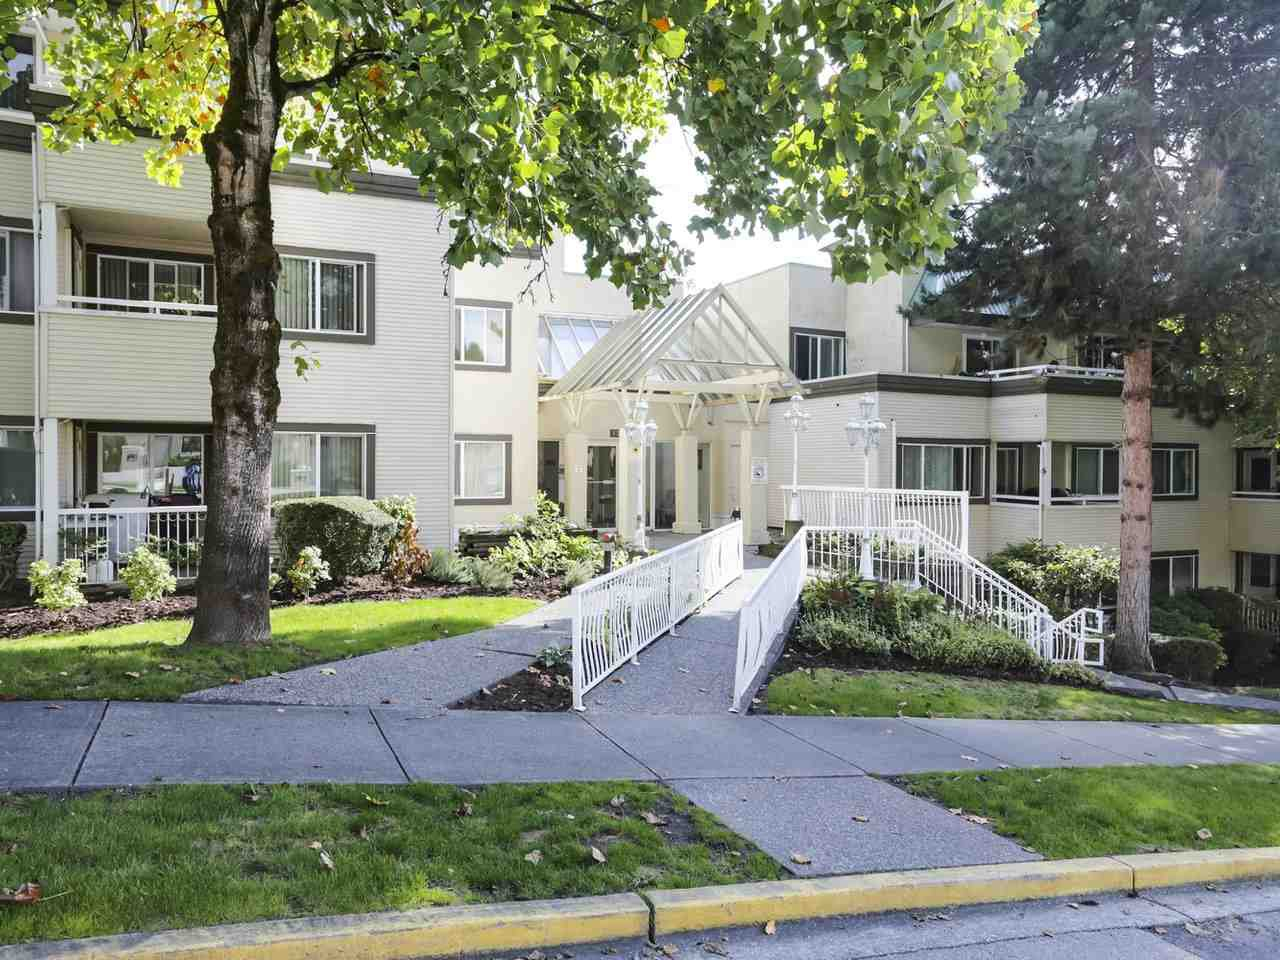 """Main Photo: 717 1310 CARIBOO Street in New Westminster: Uptown NW Condo for sale in """"River Valley"""" : MLS®# R2410623"""